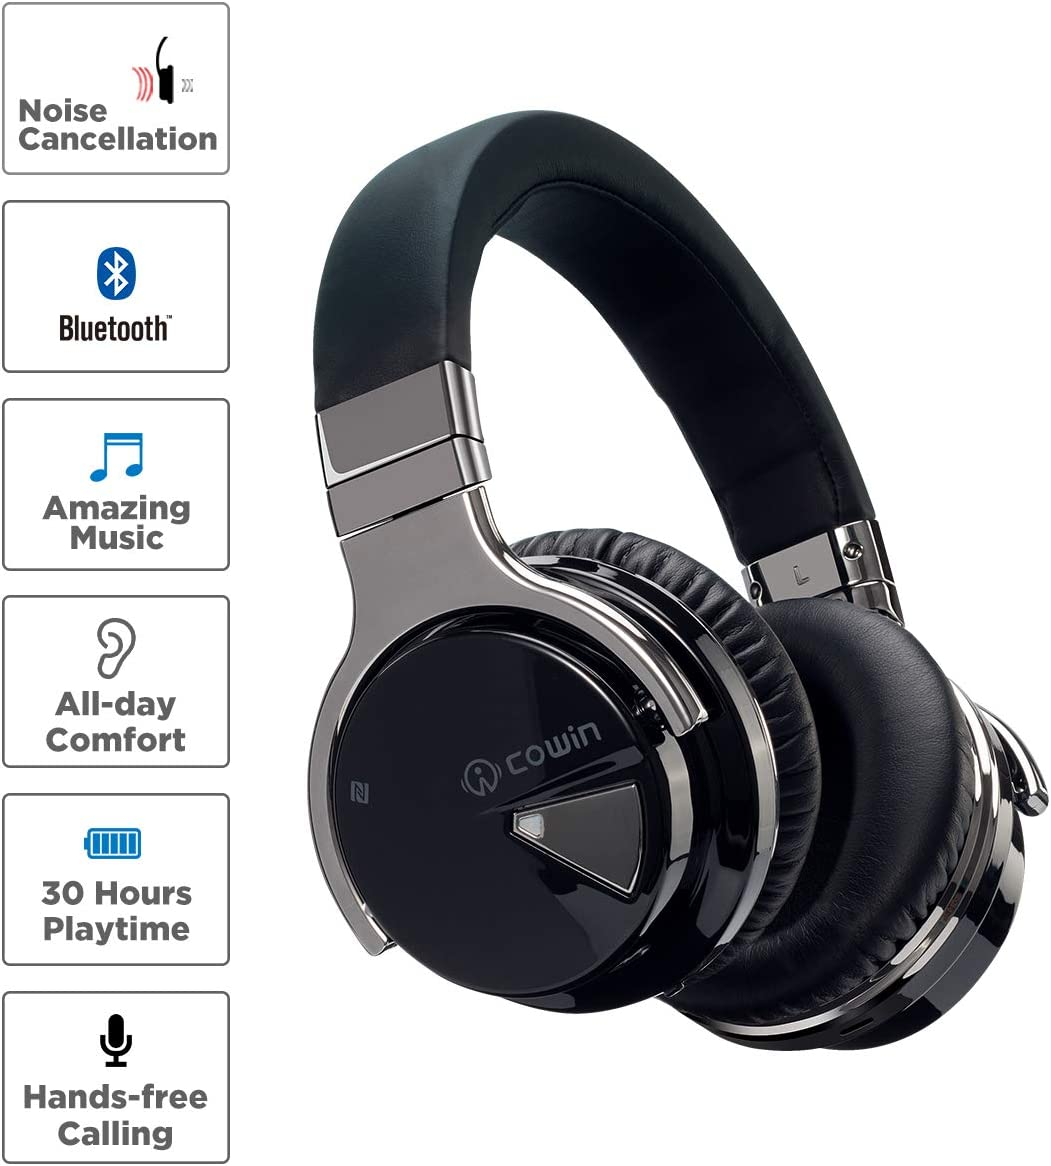 Unbоxіng - Cowin E7 Noise Cancelling Headphones Review